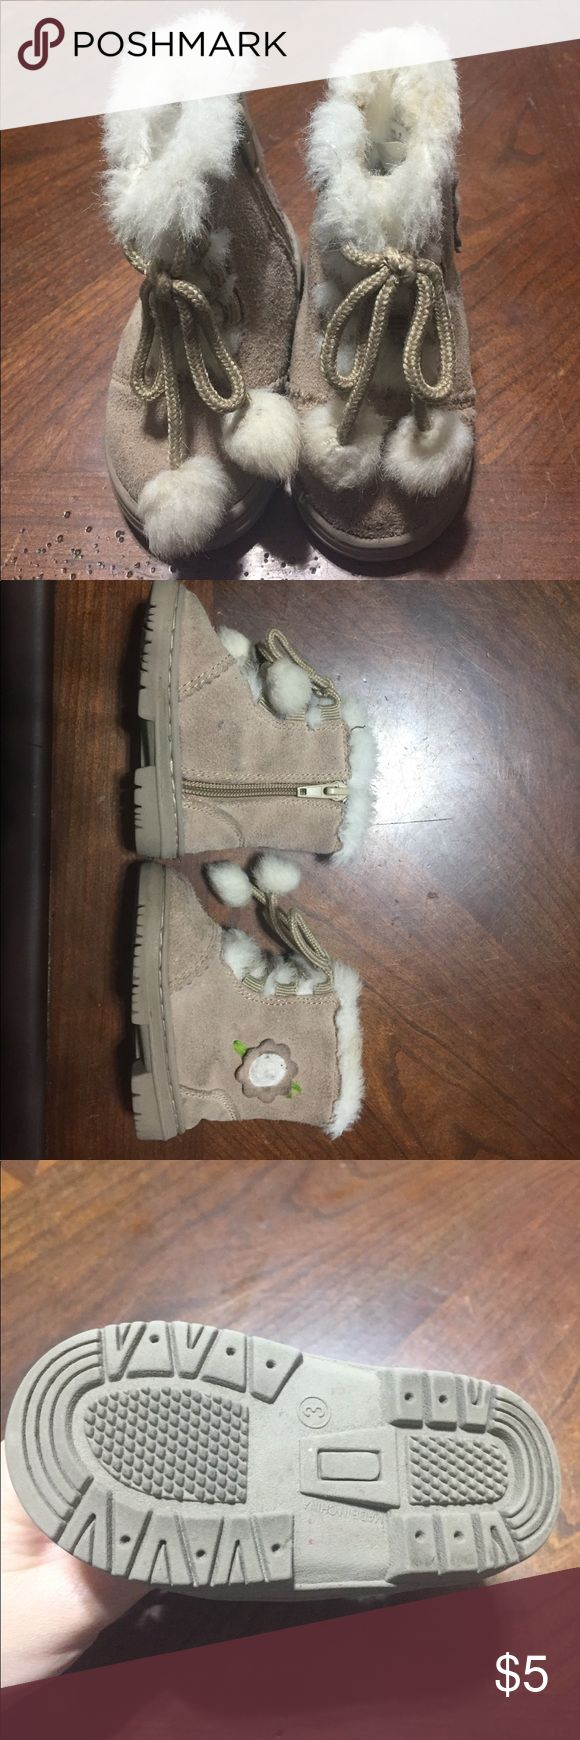 Genuine Kids Toddler Snow Boots Genuine Kids by Oshkosh. Size 3 toddler snow boots. Gently Worn. Tan color with cream faux fur. Small flower detail. Osh Kosh Shoes Rain & Snow Boots